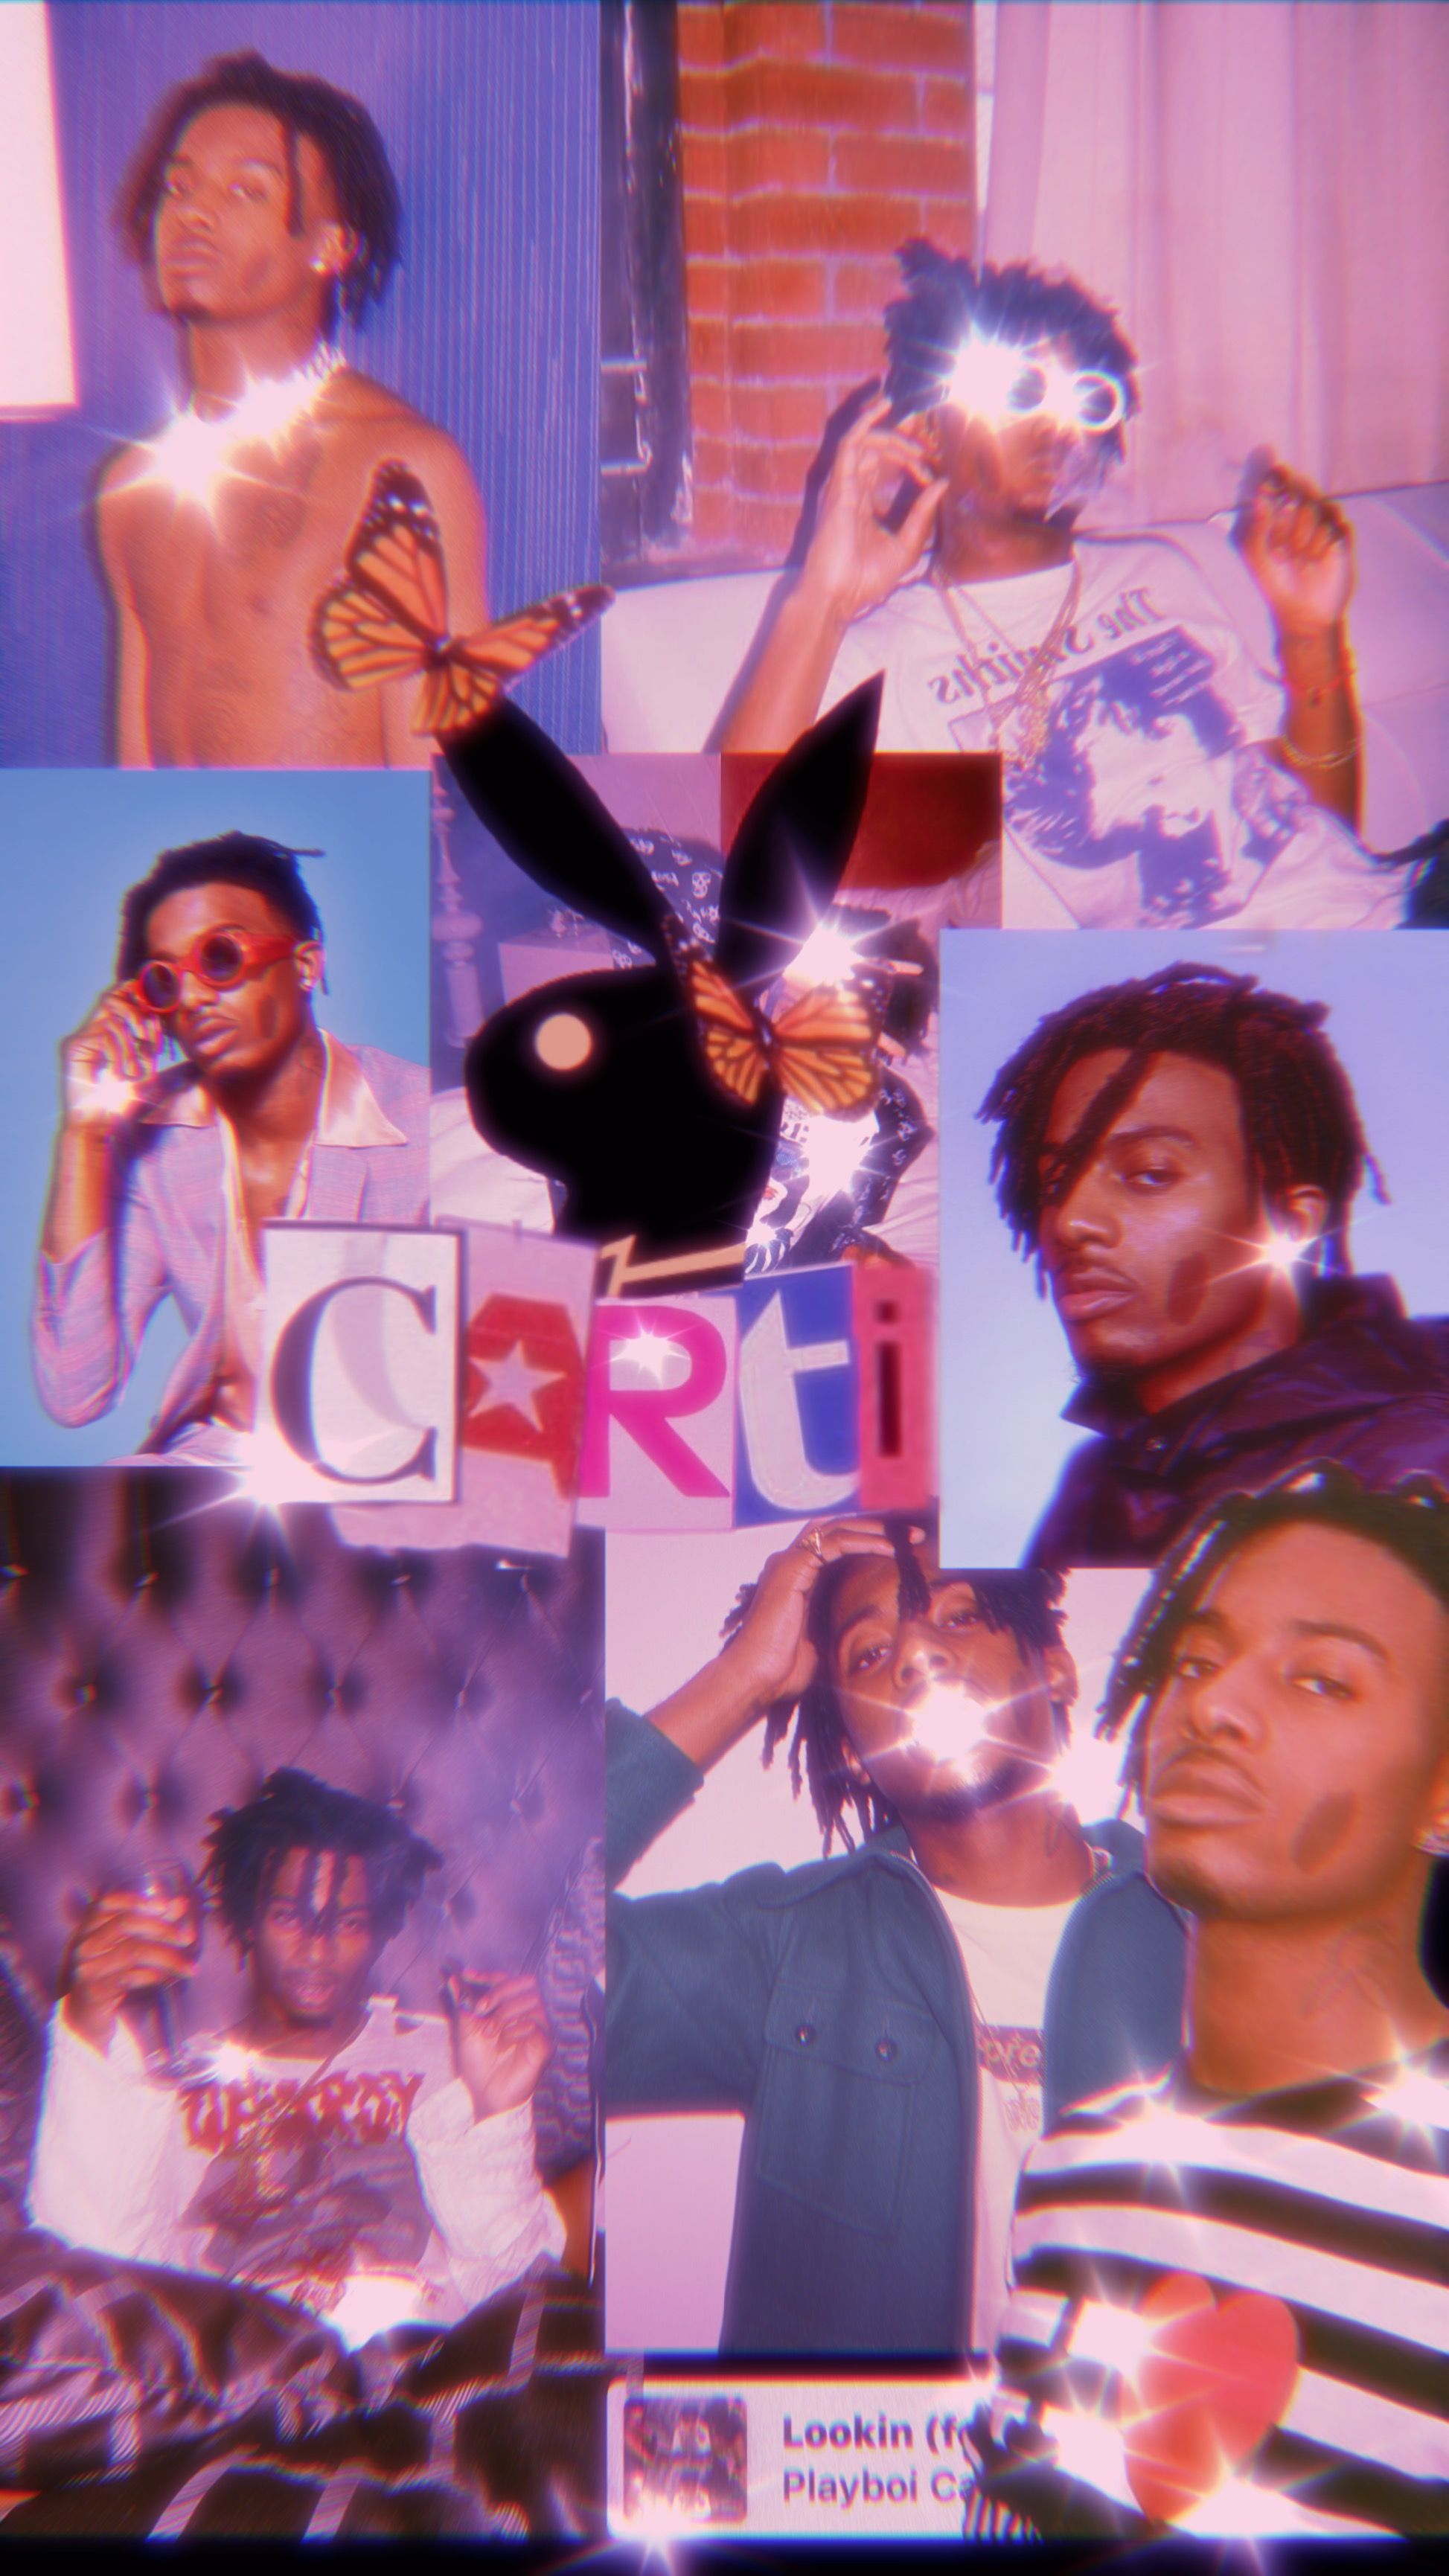 Playboi Carti Wallpaper If 2017's playboi carti (which included the lil uzi vert collaboration wokeuplikethis* and the ubiquitous magnolia) set the bar, 2018's die lit ripped it out and knocked a wall down with it. playboi carti wallpaper